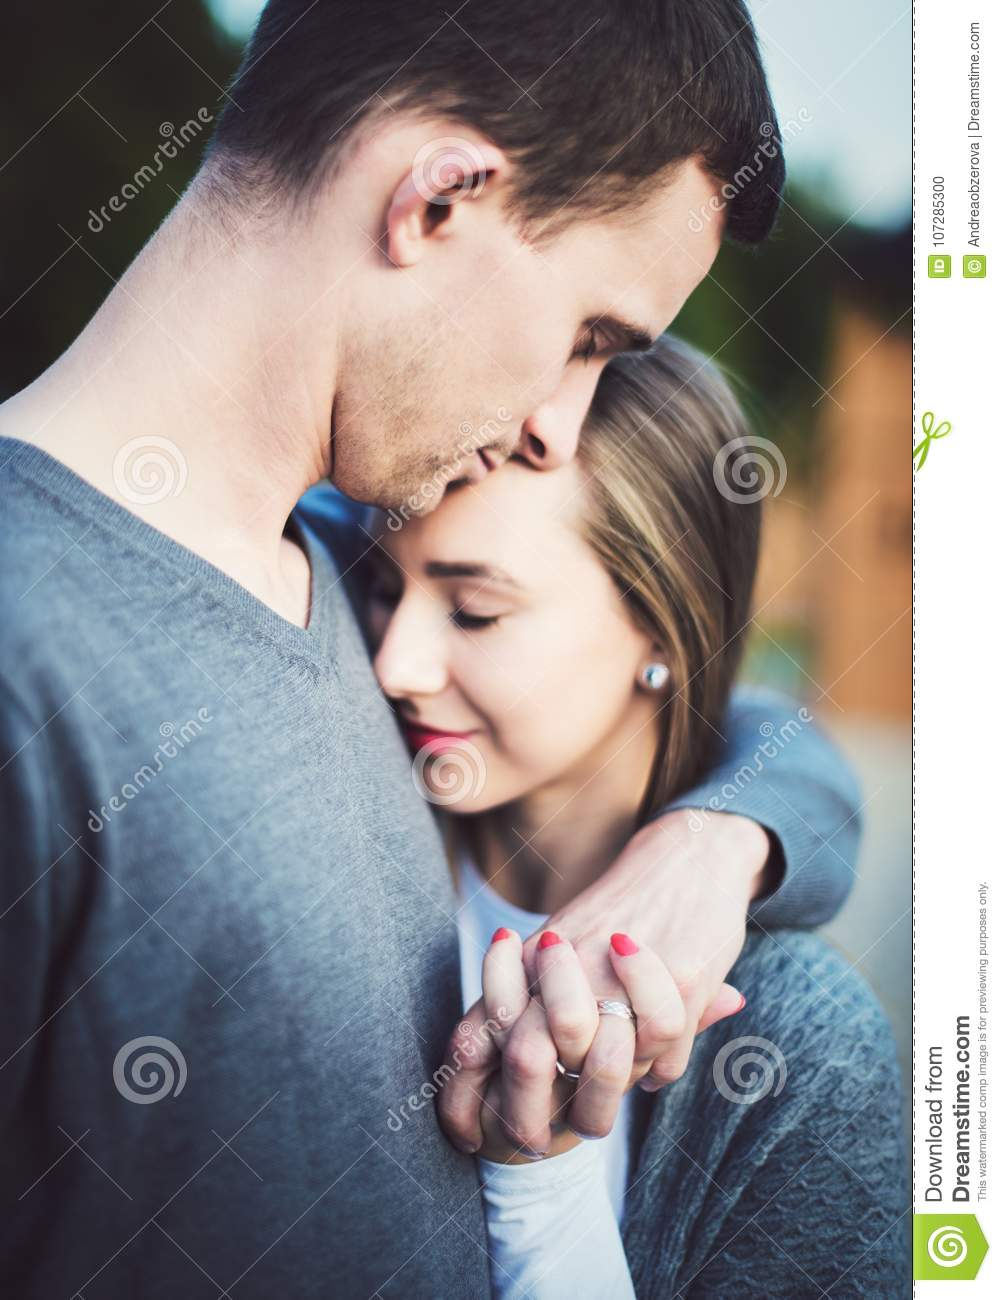 Happy Young Couple In Love On A Date Hugging Loving Couple Romance Stock Photo Image Of Hands Love 107285300